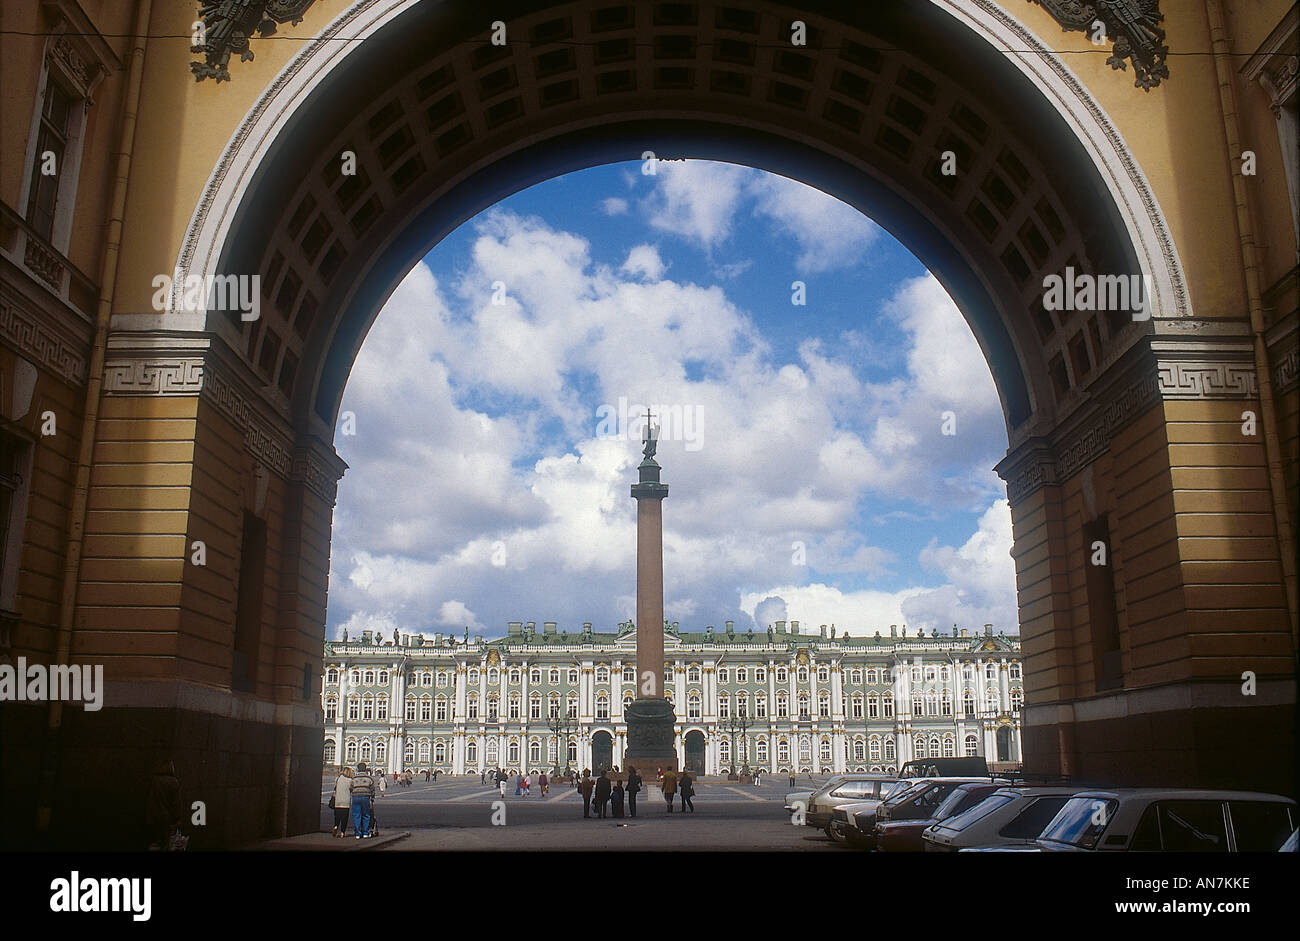 Part of the facade of the Hermitage viewed beyond the Alexander Column through the archway of the former General Staff Building in Palace Square - Stock Image